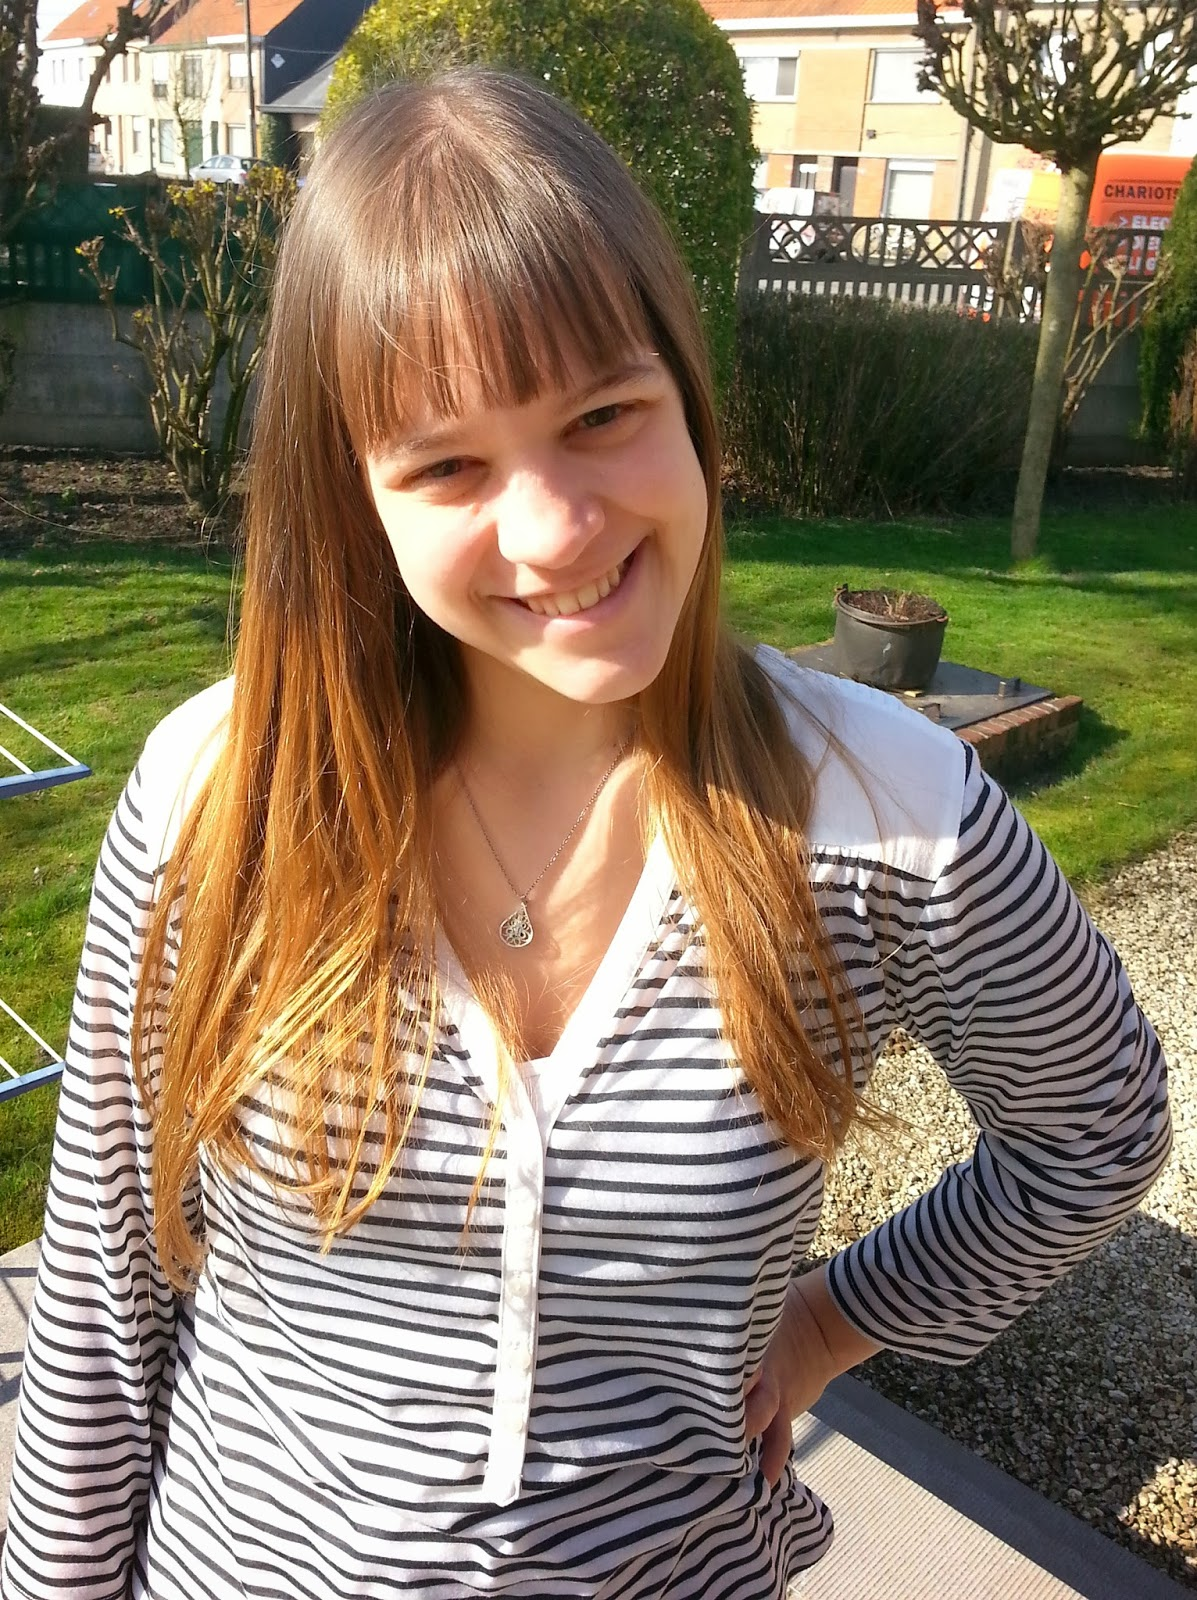 Clothes & Dreams: OOTD: The return of the sun + my haircut: bangs and ombre :D